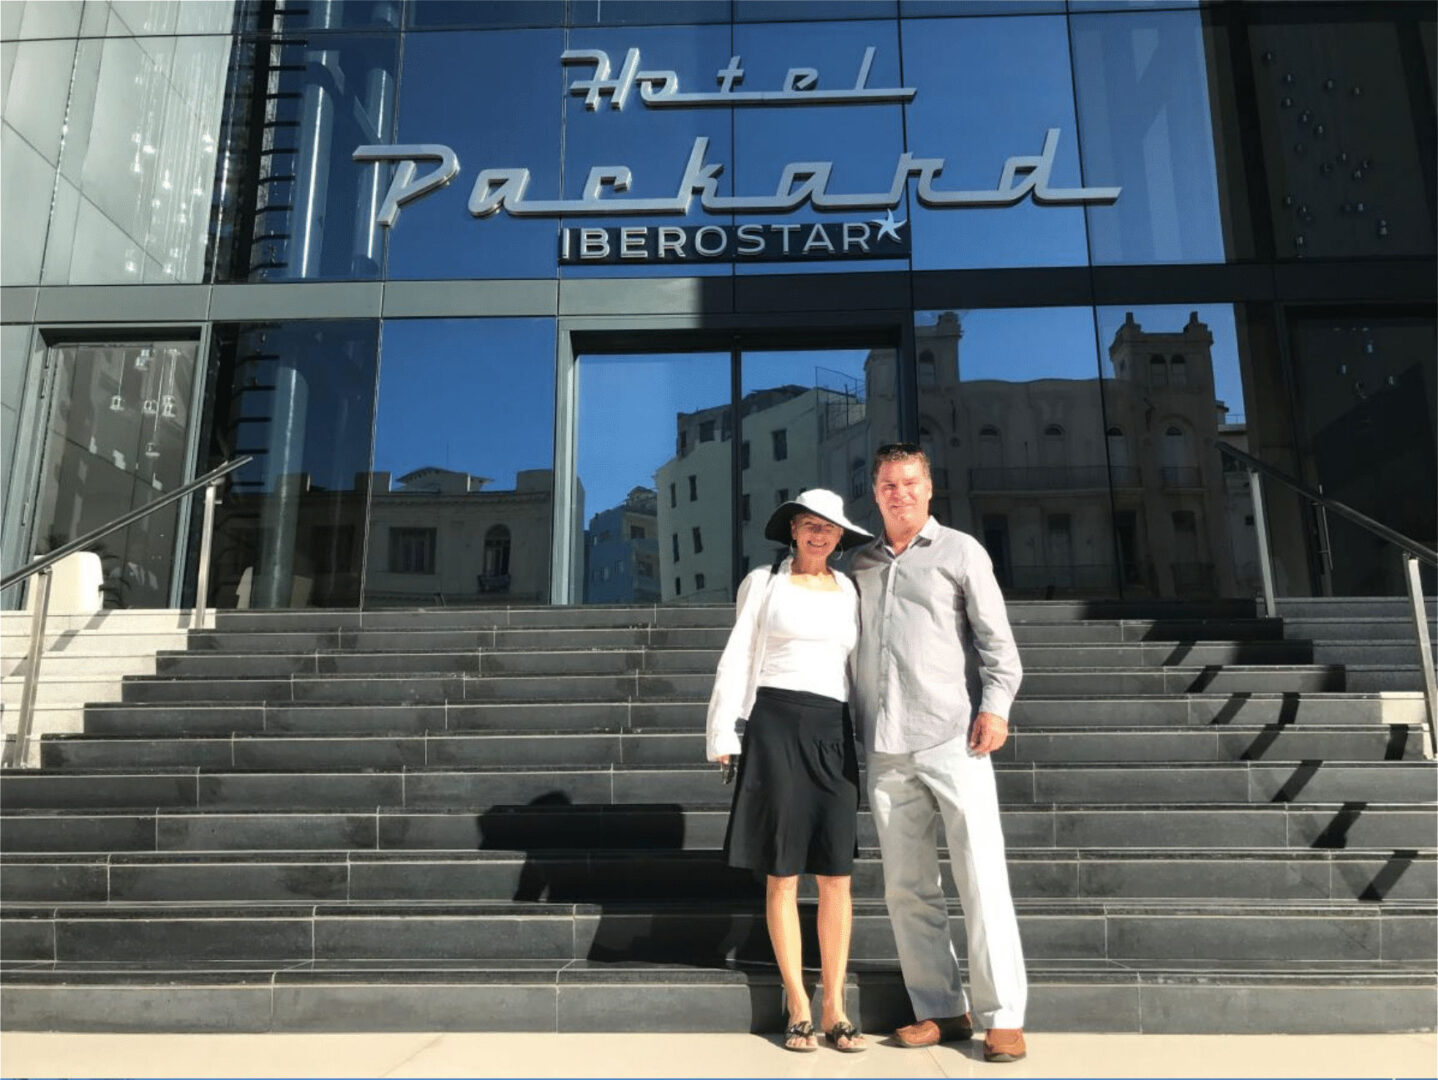 A couple in front of a hotel